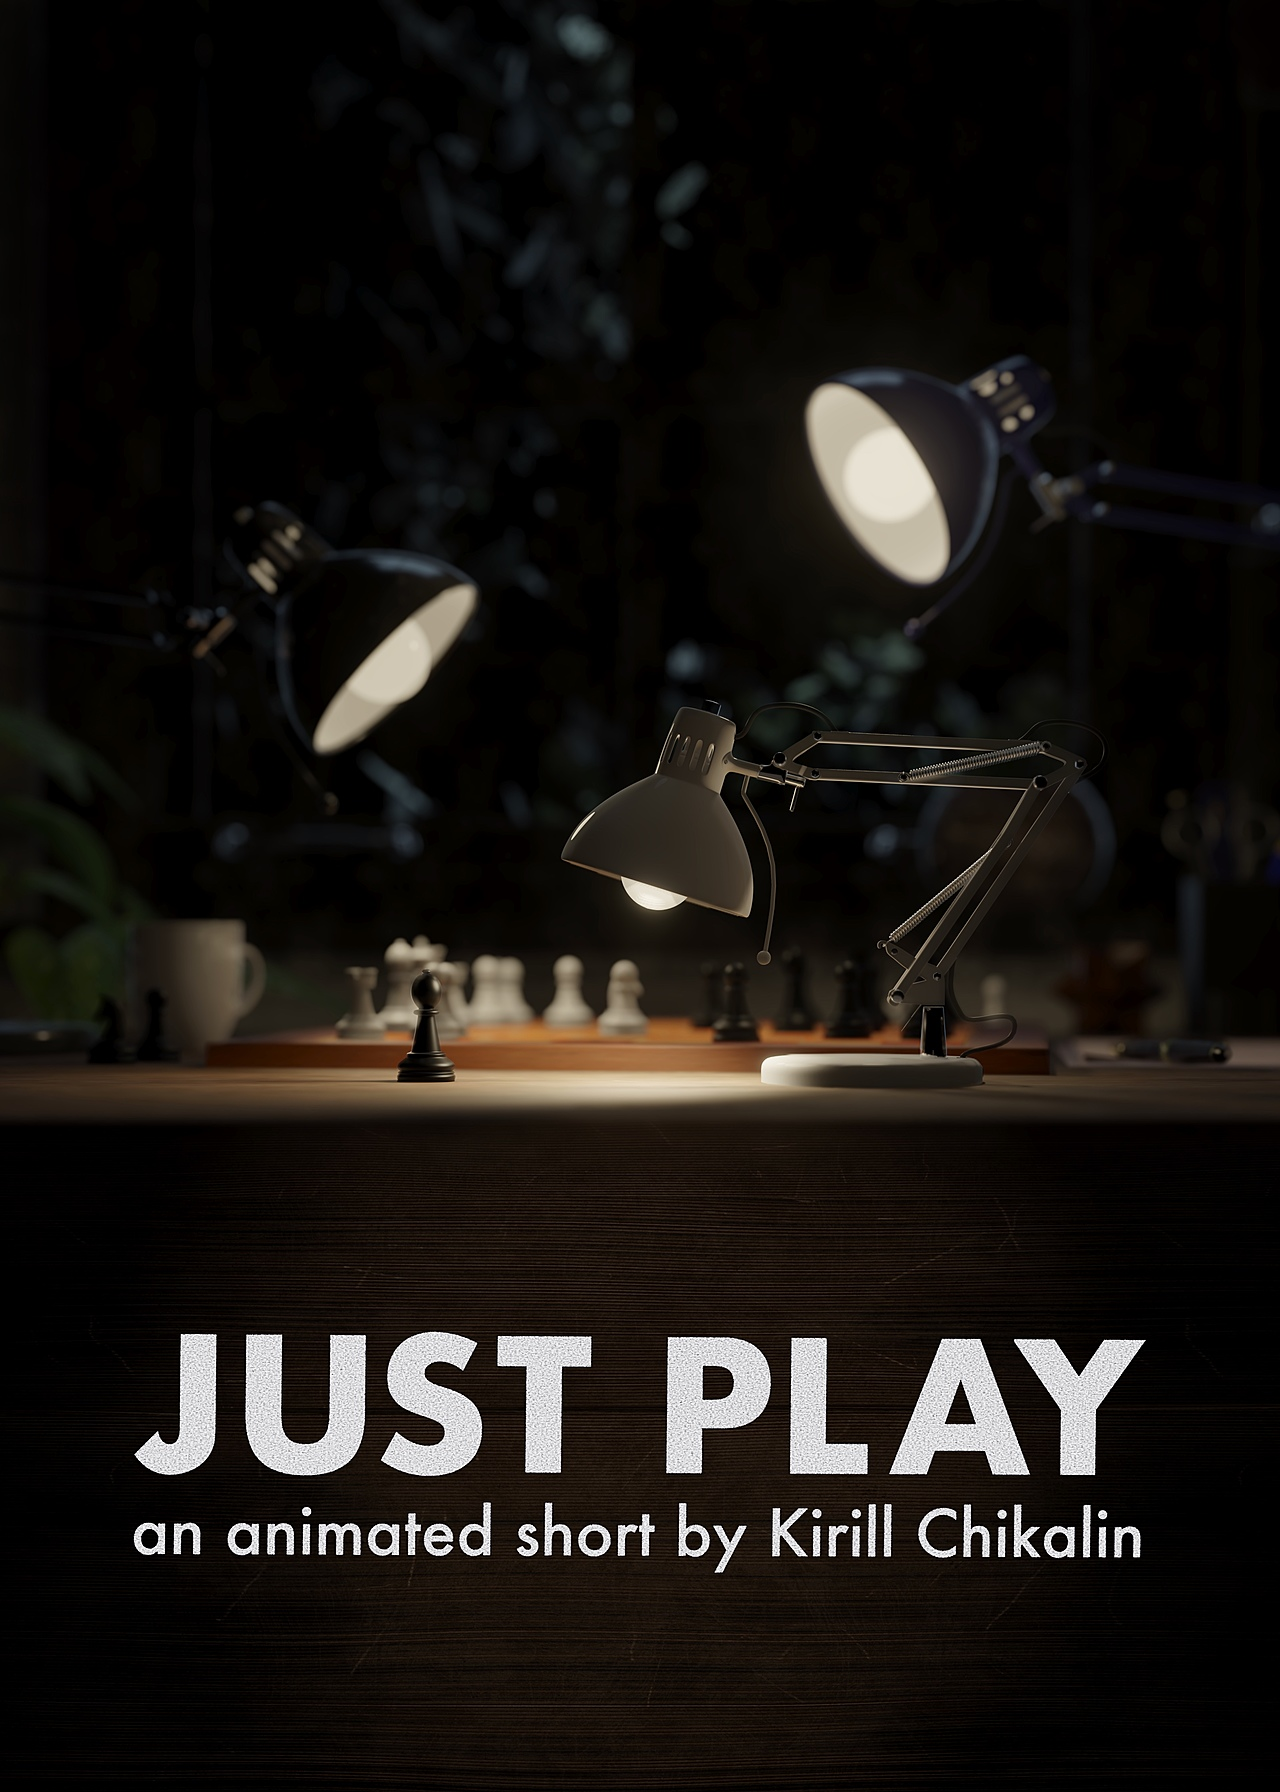 Just Play // an animated short by Kirill Chikalin